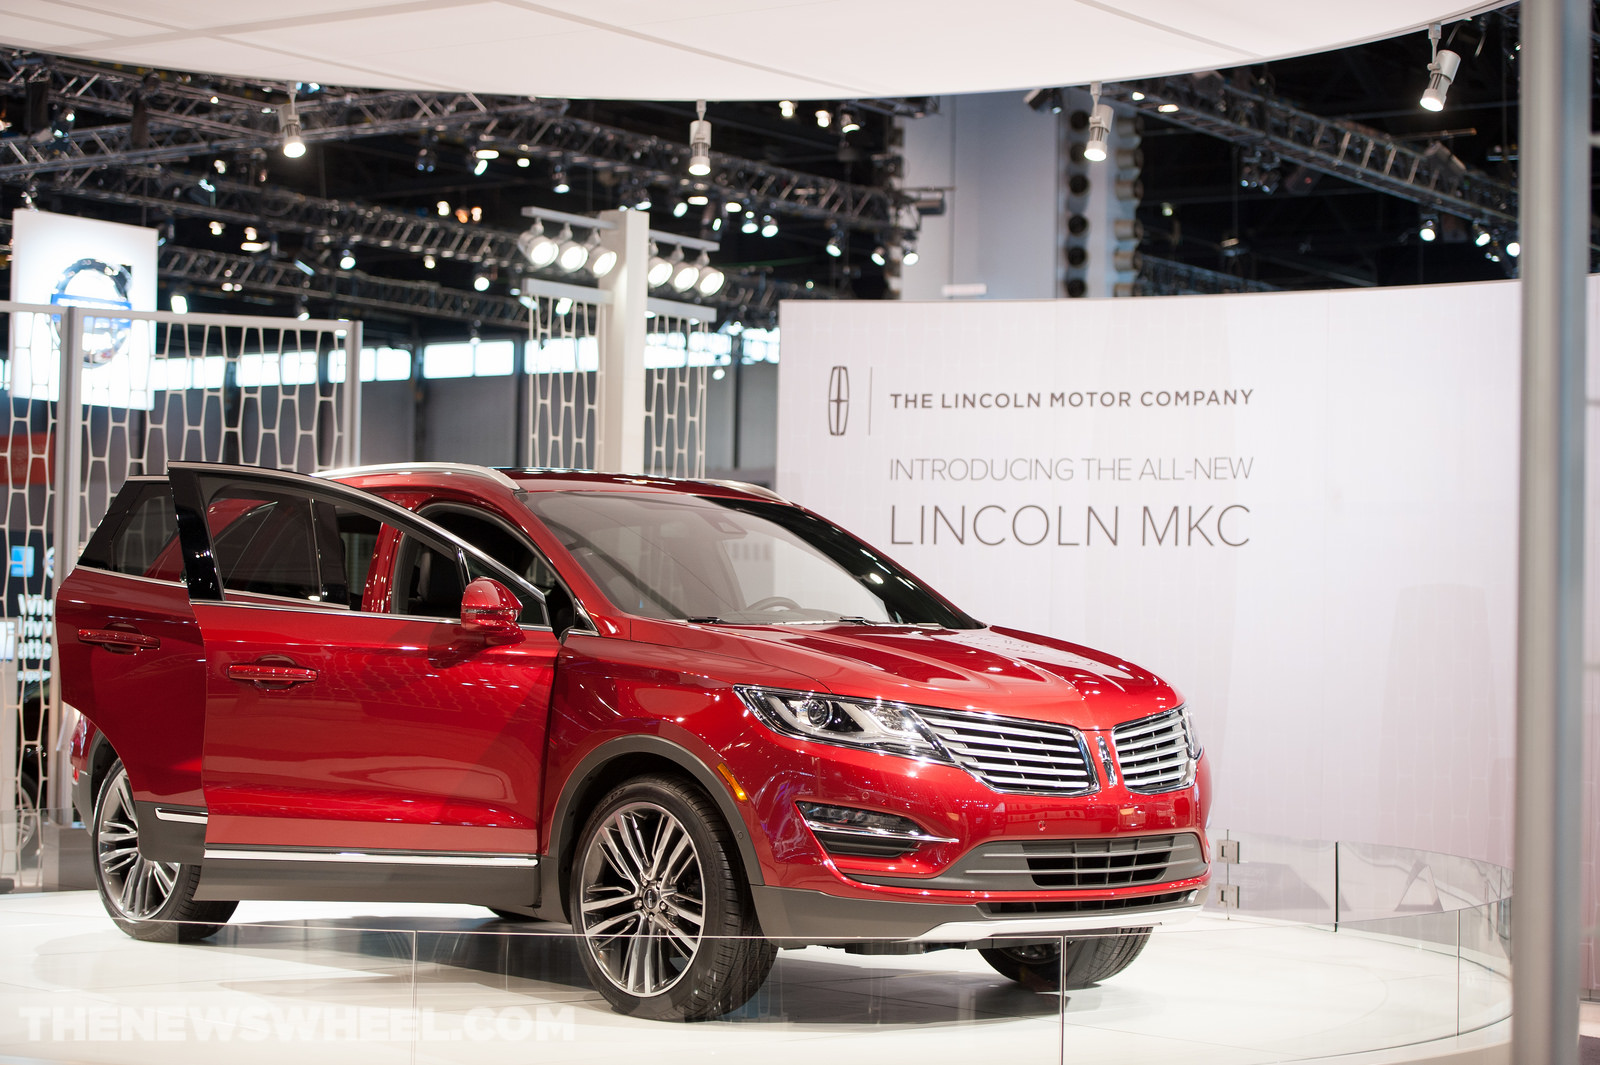 Lincoln MKC and Essence Magazine